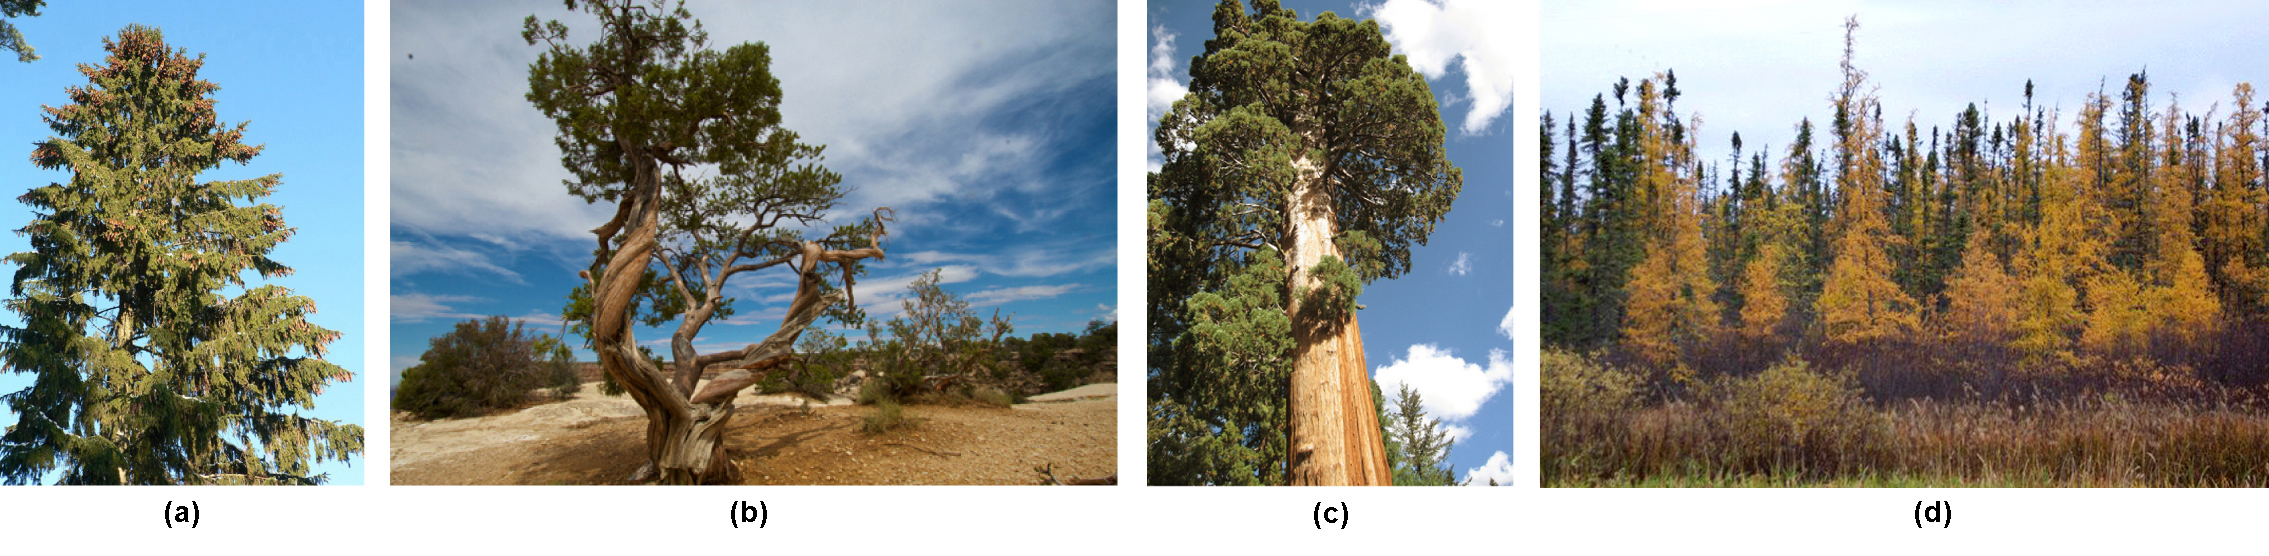 Photo A shows a juniper tree with a gnarled trunk. Photo B shows a sequoia with a tall, broad trunk and branches starting high up the trunk. Photo C shows a forest of tamarack with yellow needles. Photo D shows a tall spruce tree covered in pine cones. Photo B. Photo C Part D